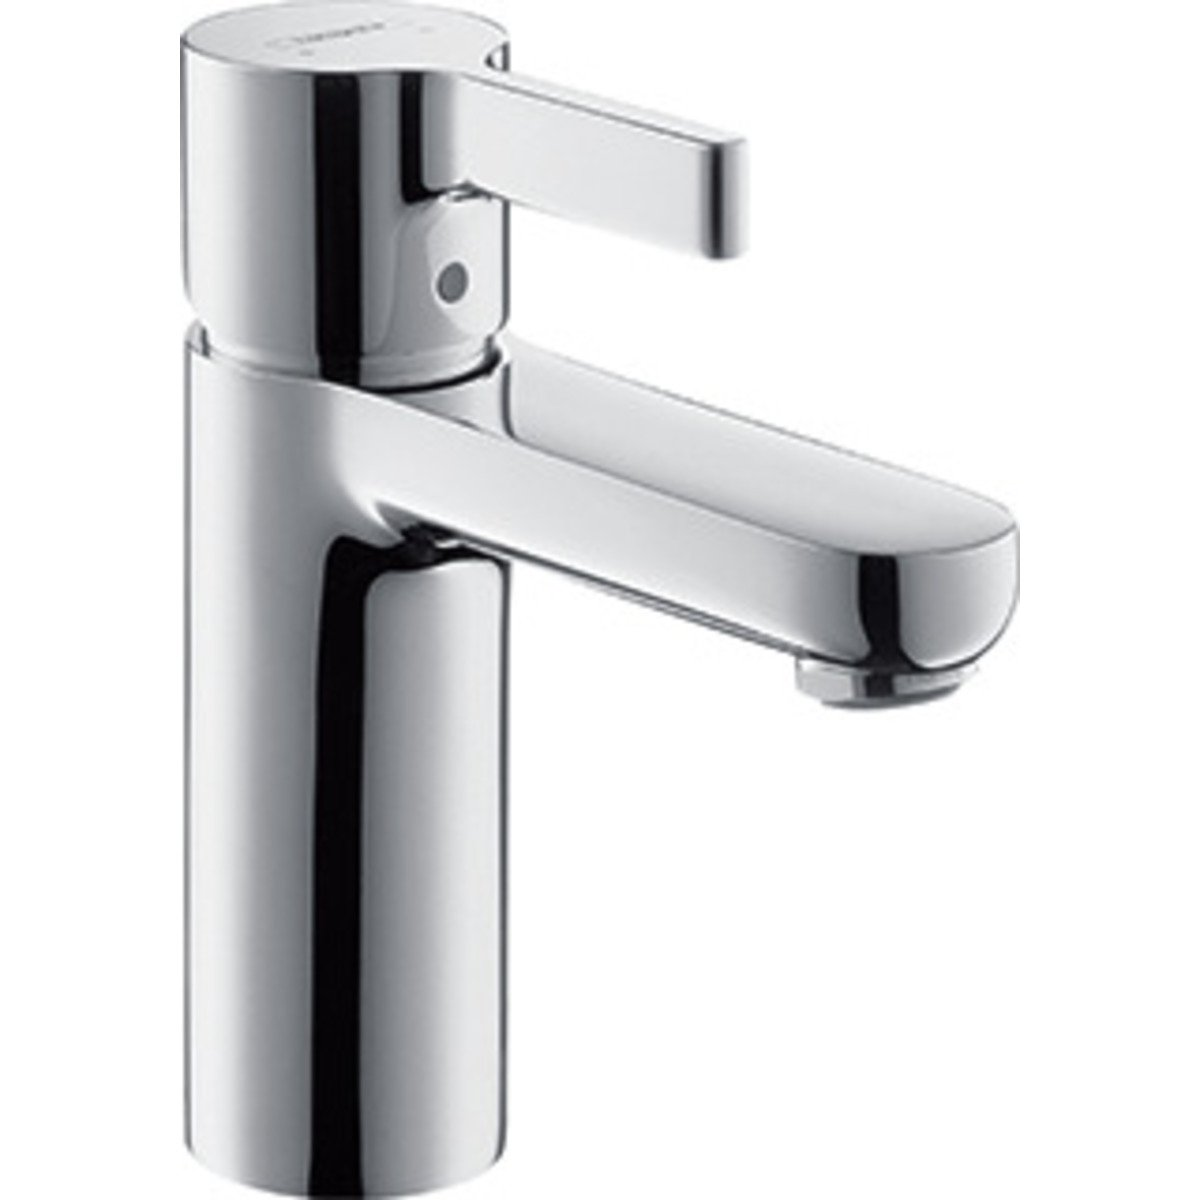 hansgrohe metris s robinet pour lavabo lowflow avec bonde chrome 31063000. Black Bedroom Furniture Sets. Home Design Ideas